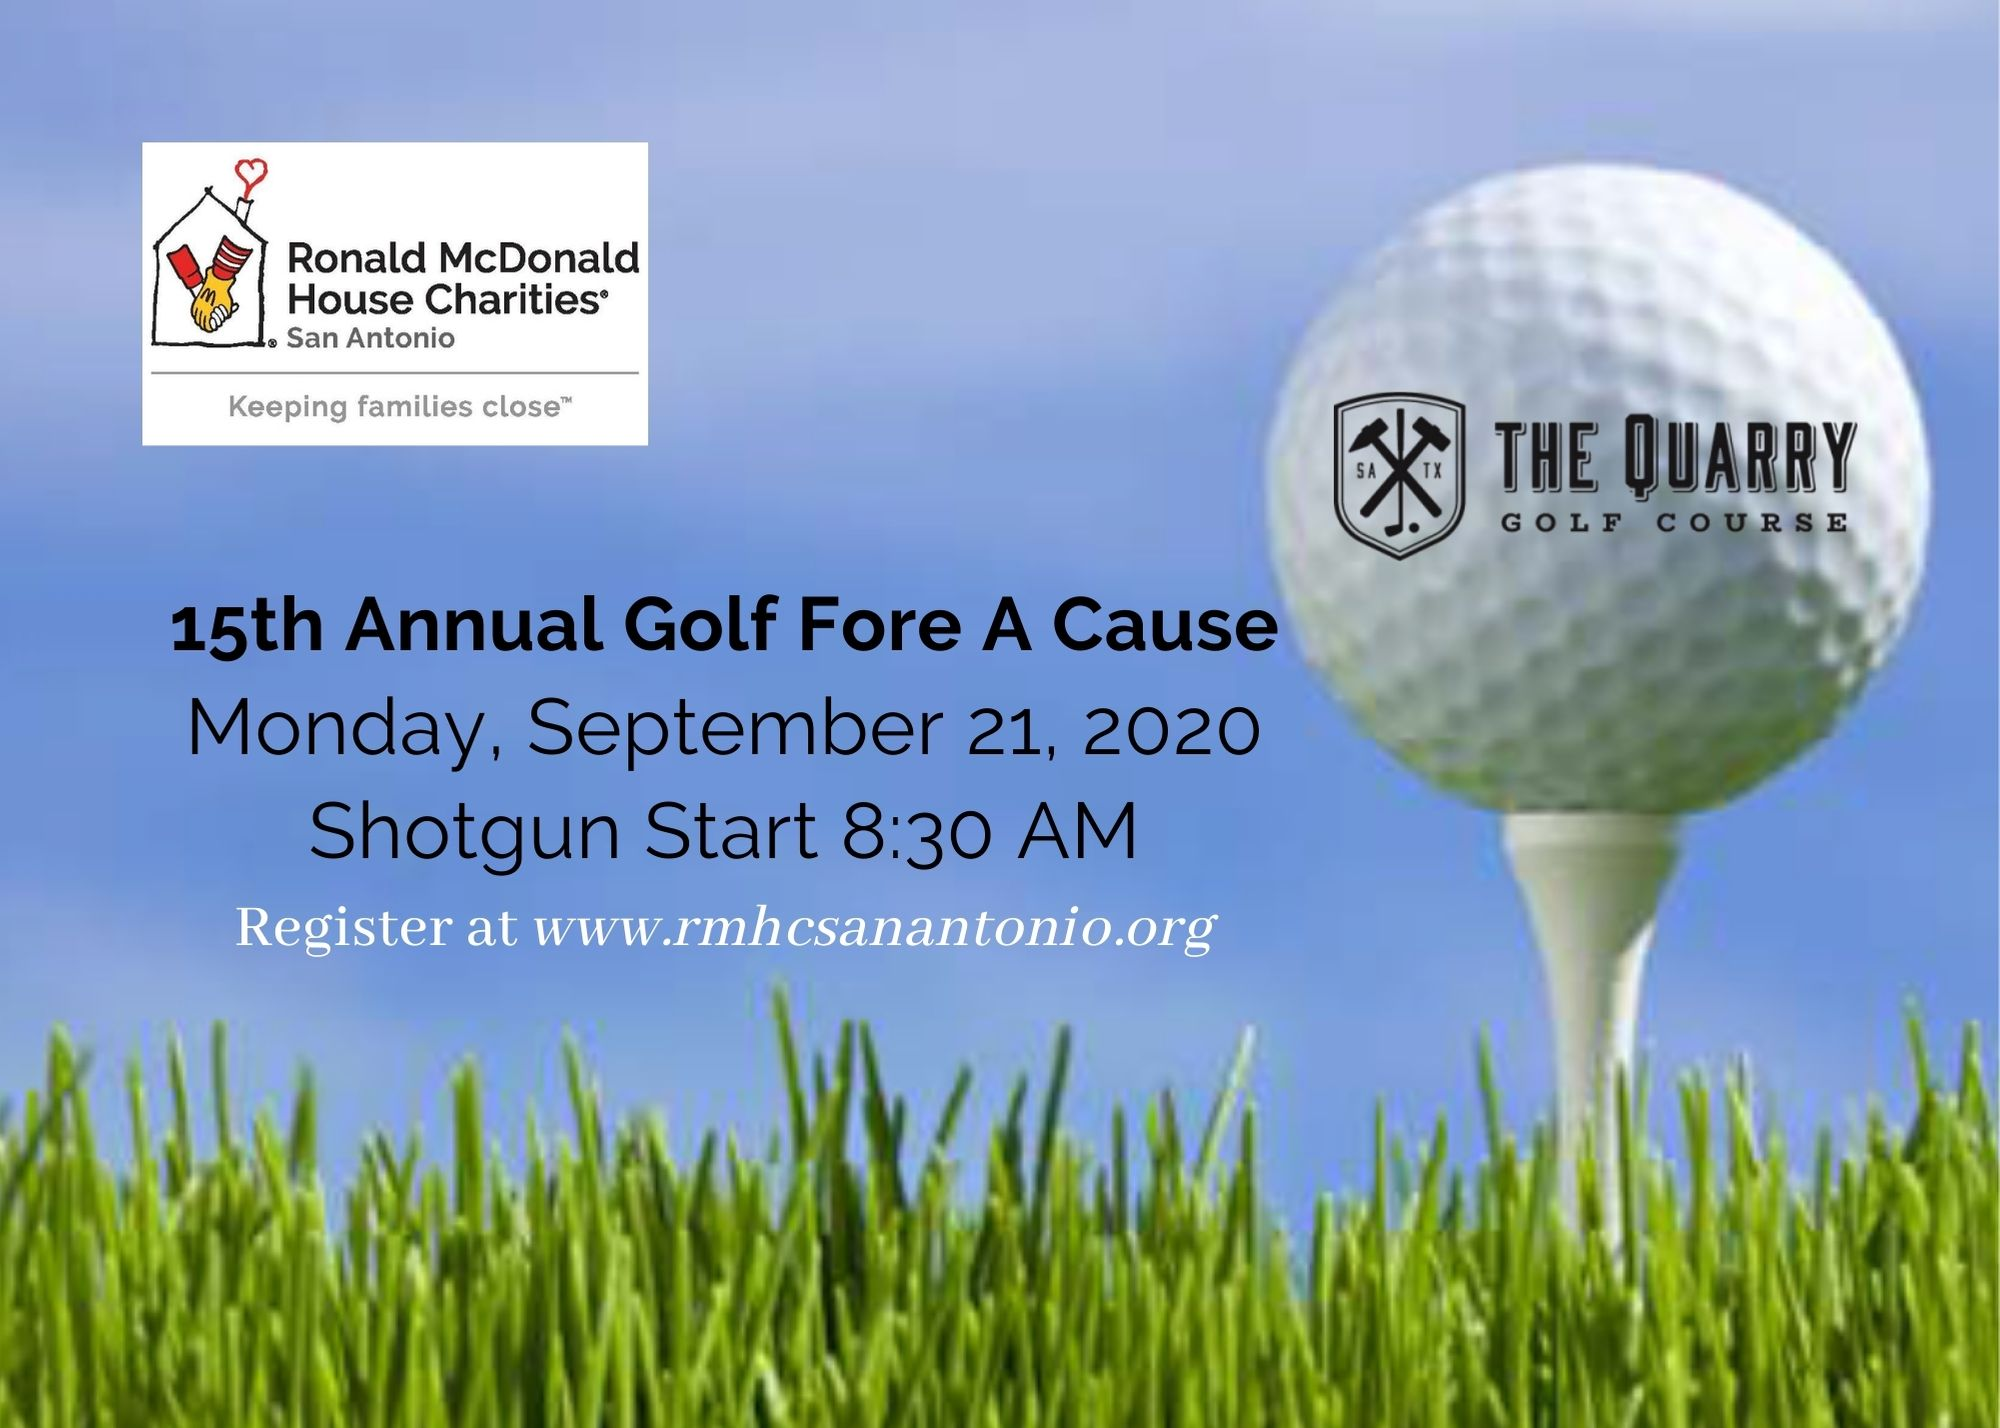 Save the date for 15th Annual Golf Fore a Cause Classic